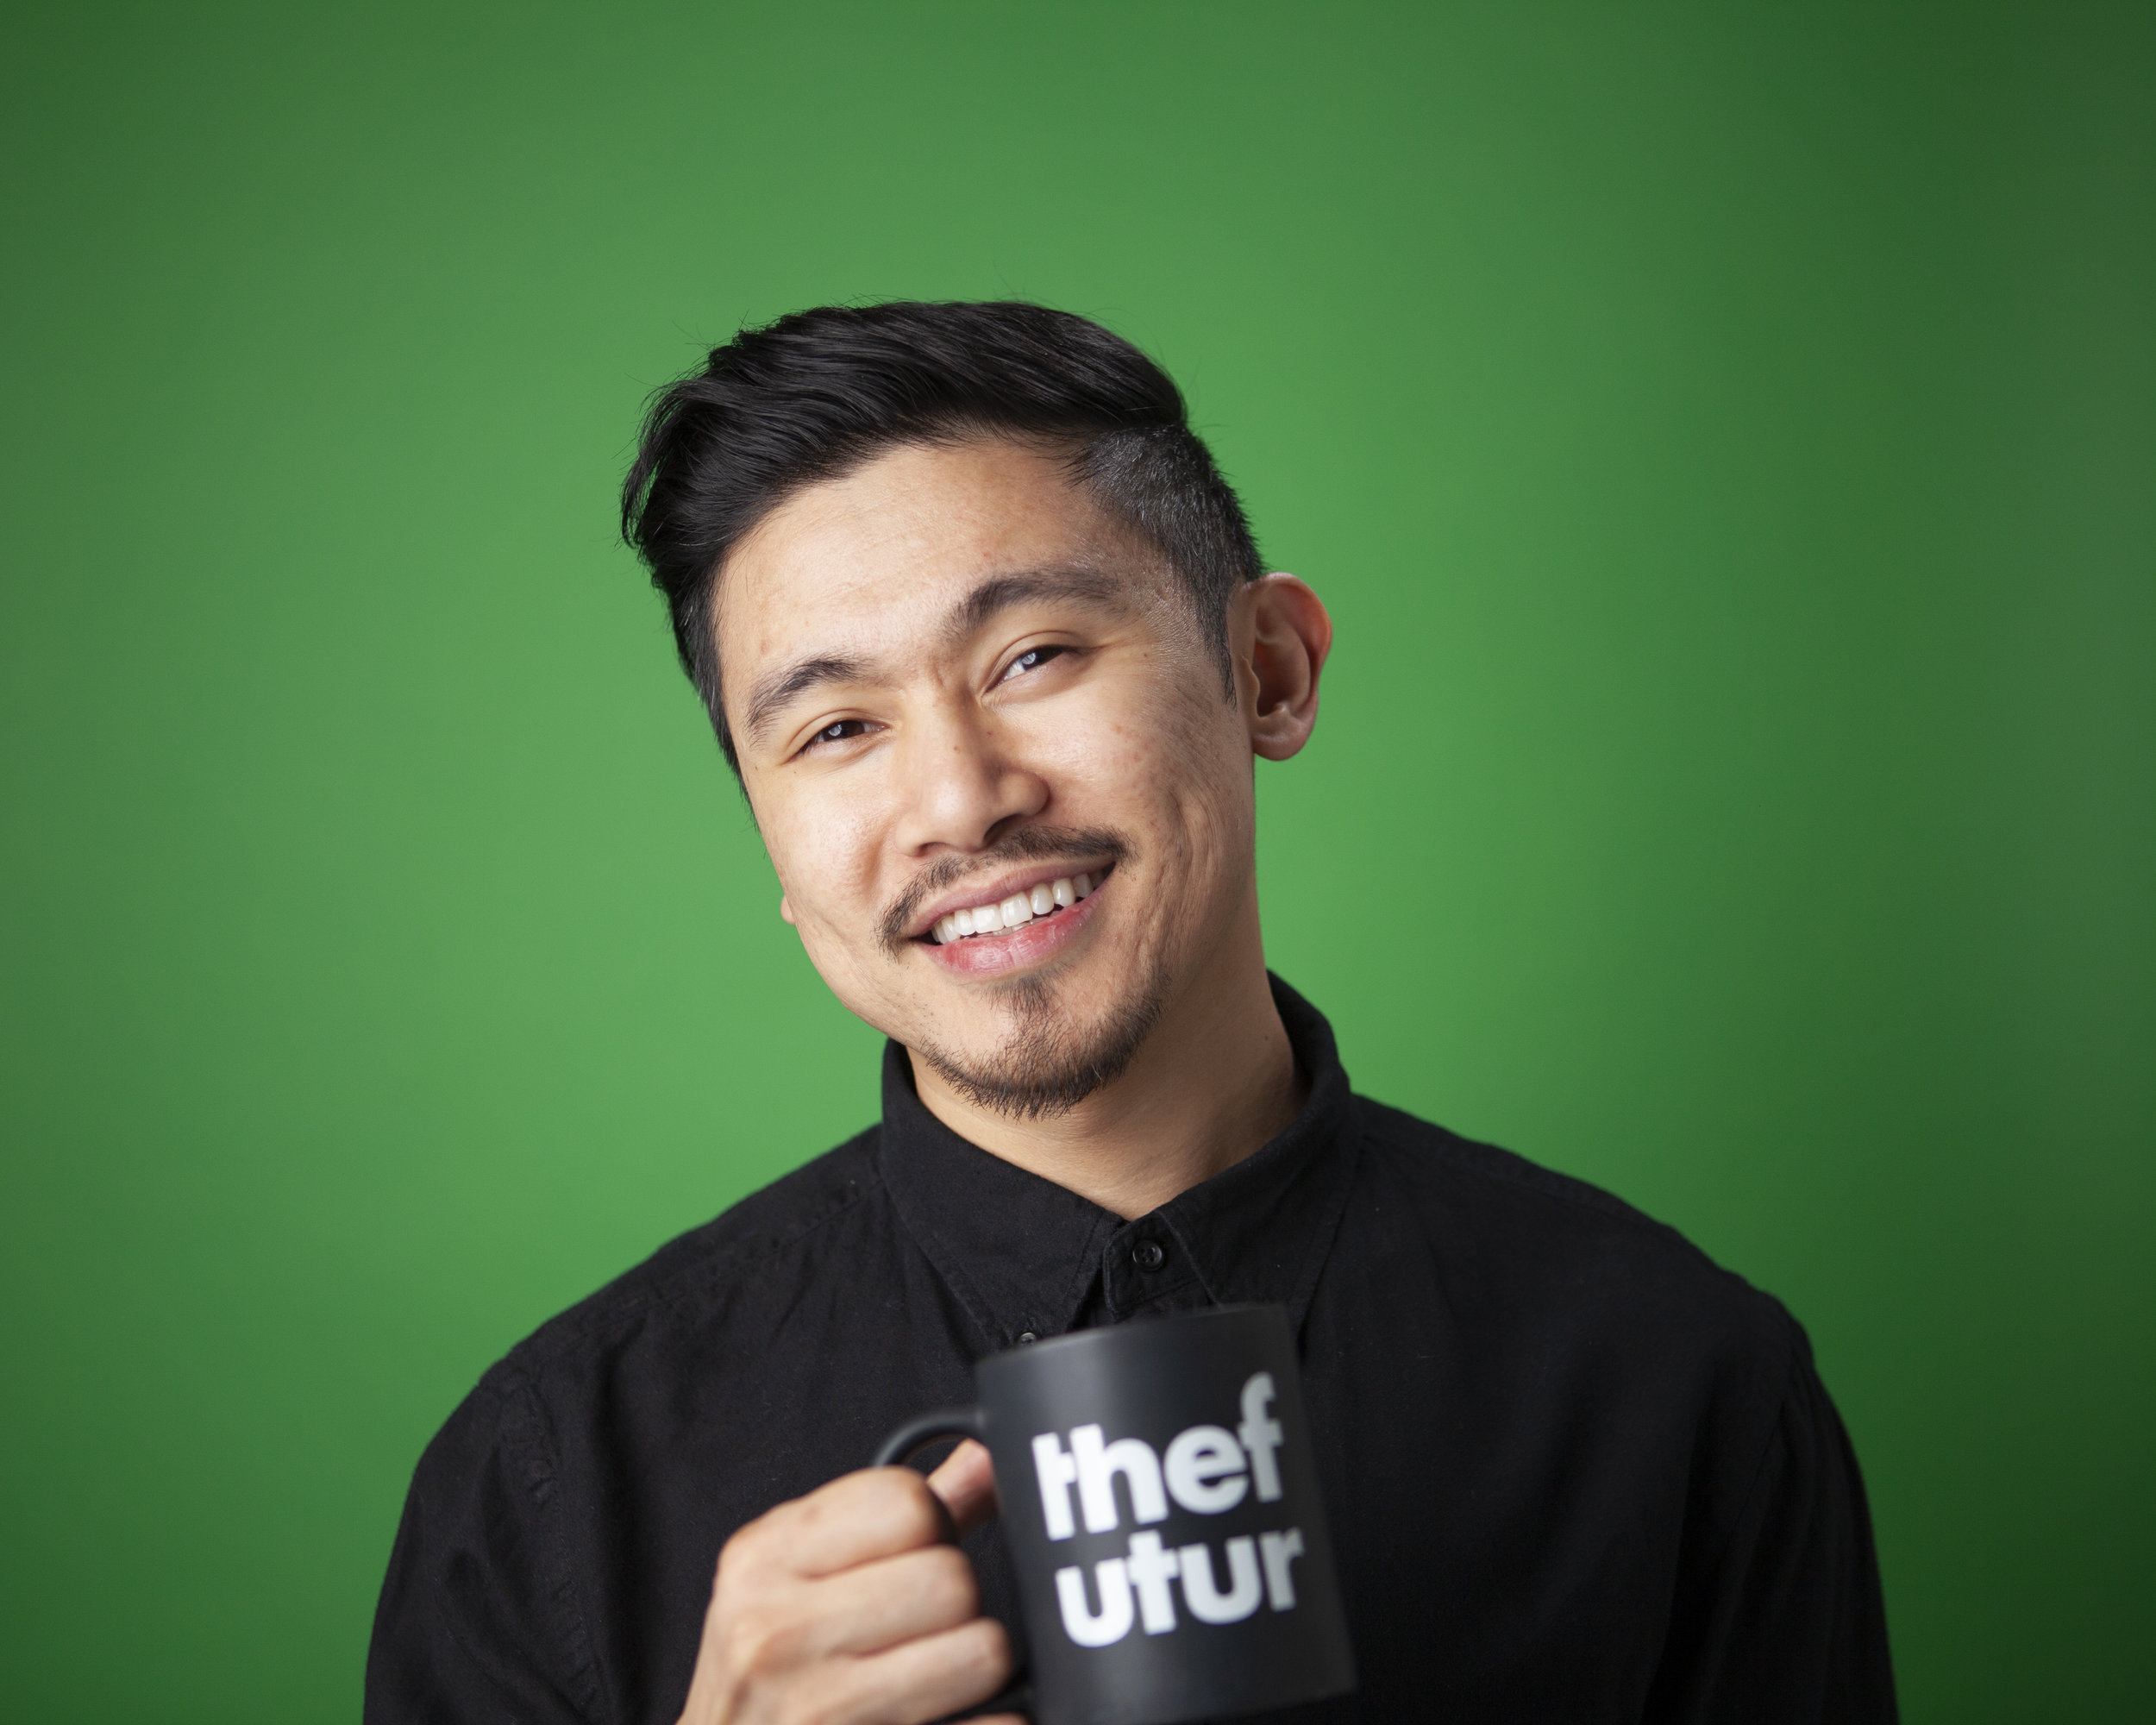 Hello, I'm Matthew Encina. A content creator, educator, and creative director. - Of course, there's so much more to me than just a few fancy titles. Scroll down and get to know me.